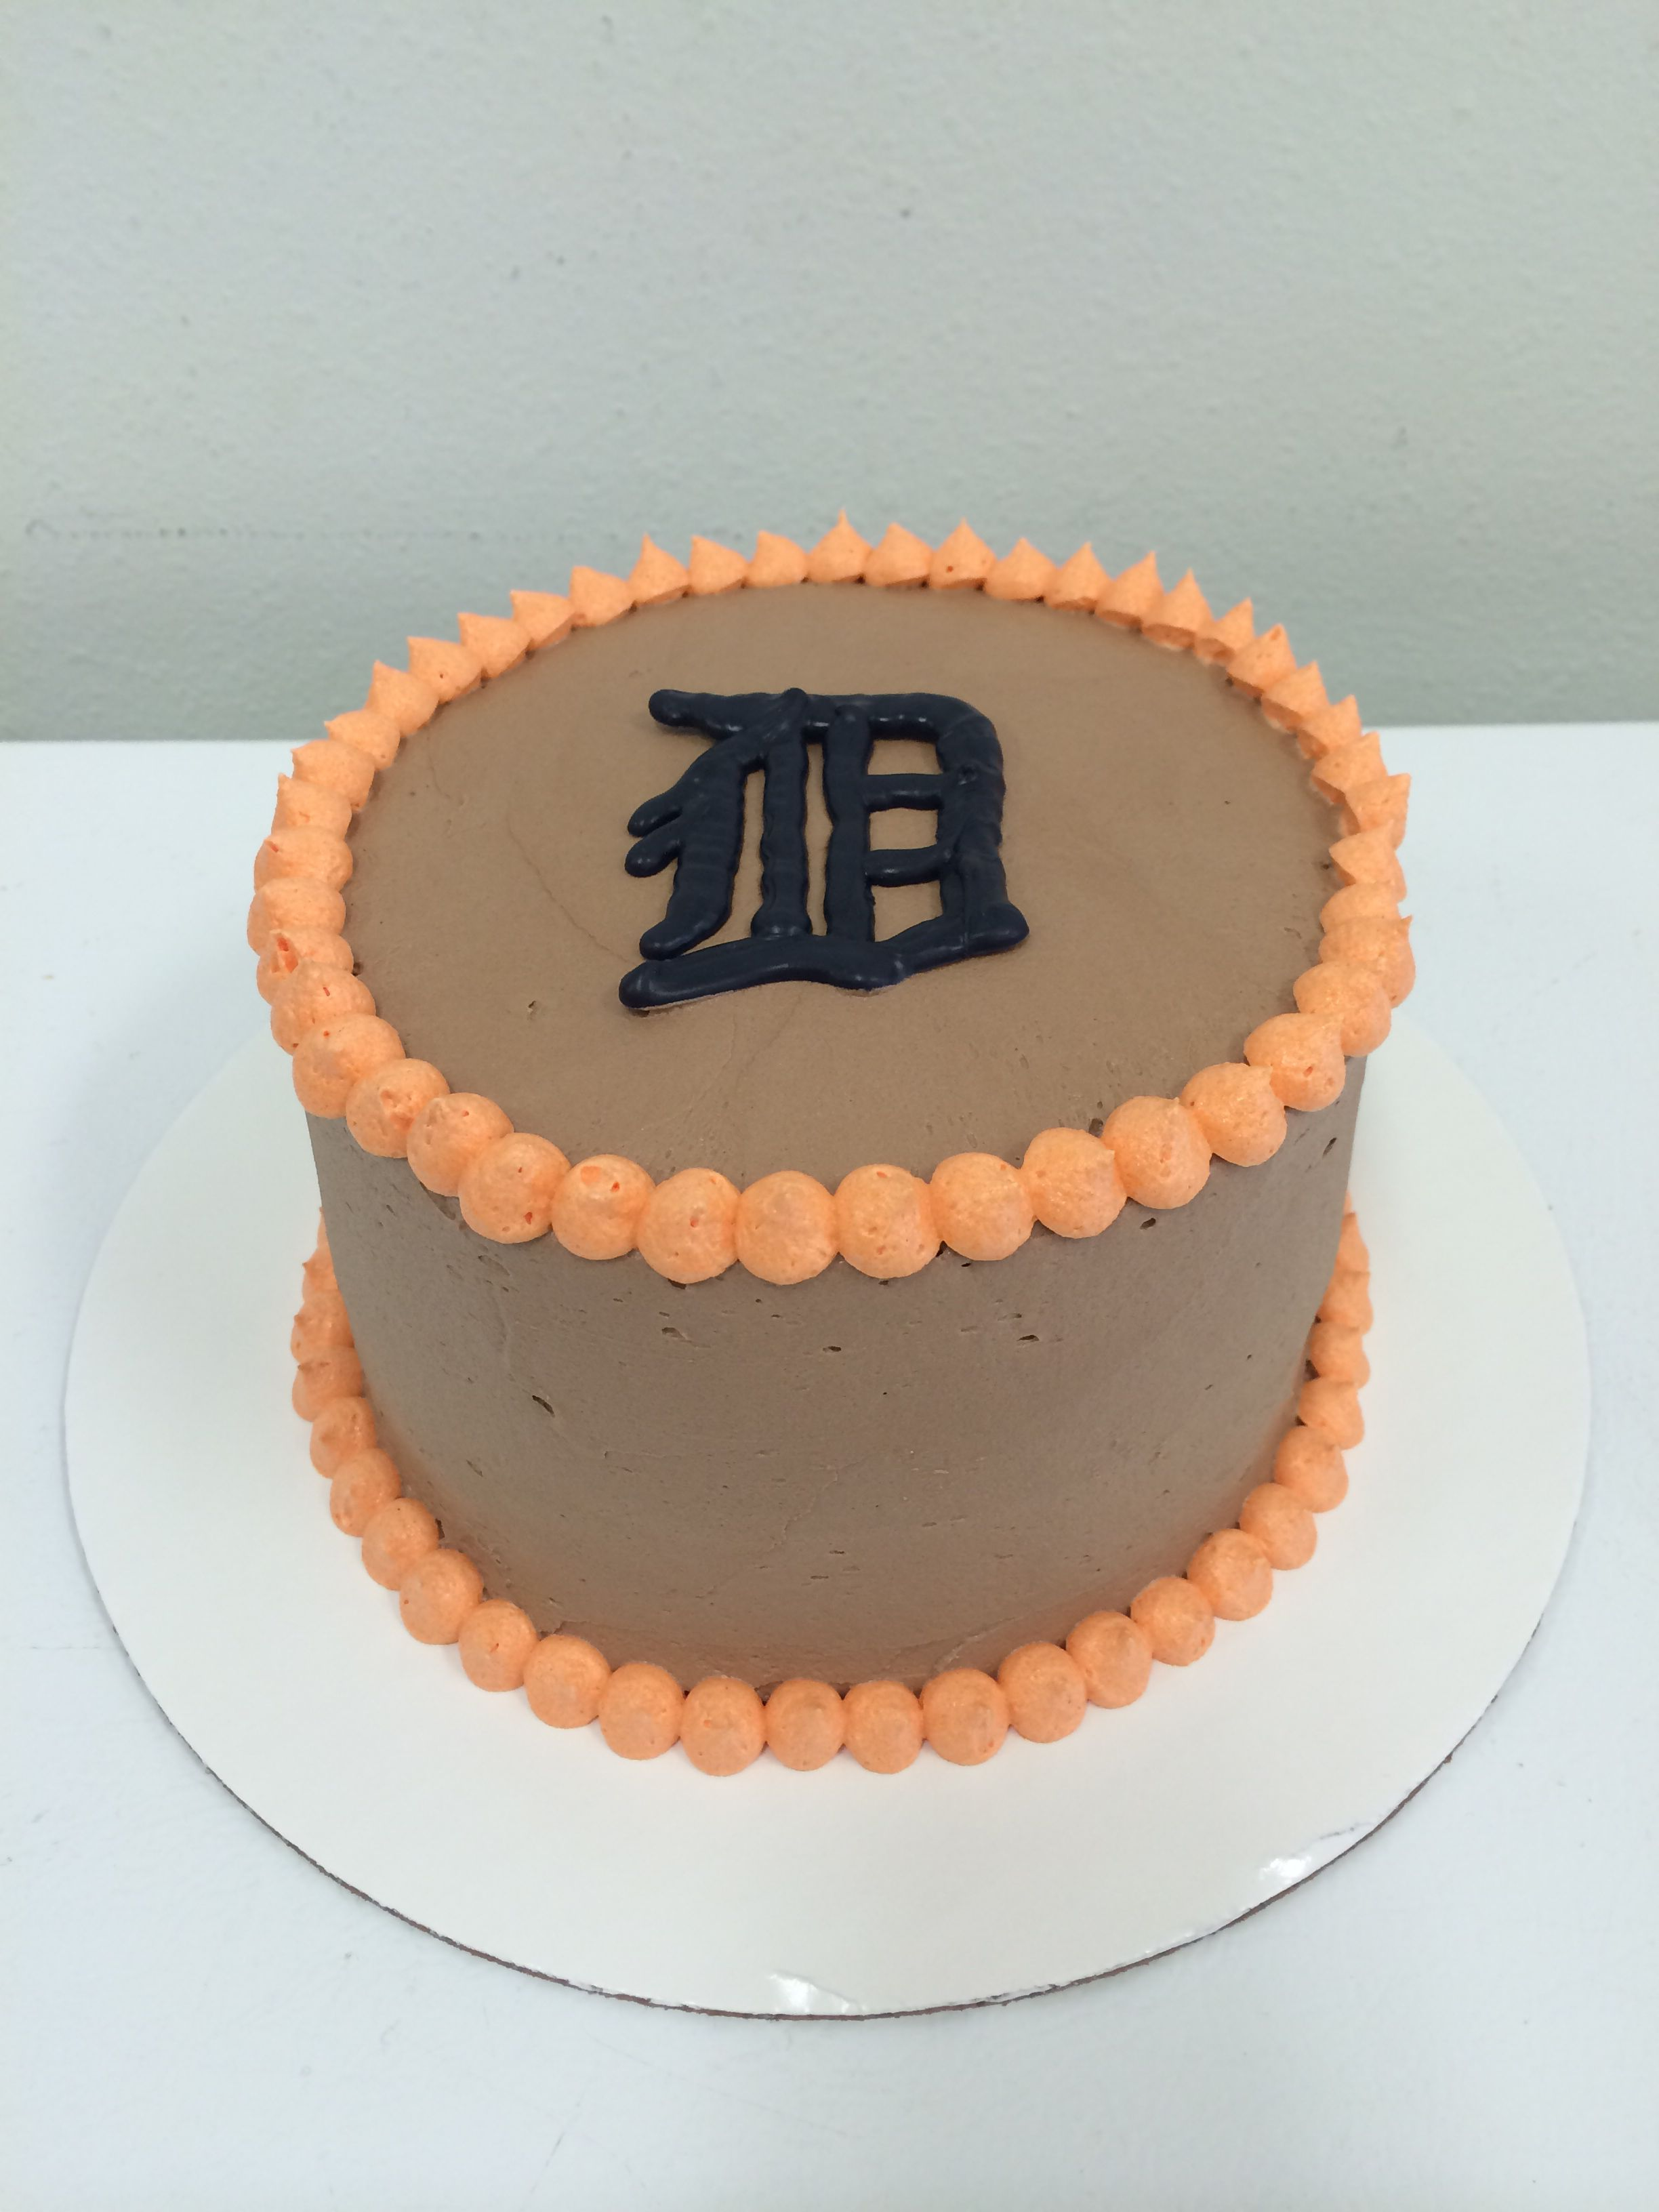 Detroit tigers cake - logo made from candy melts